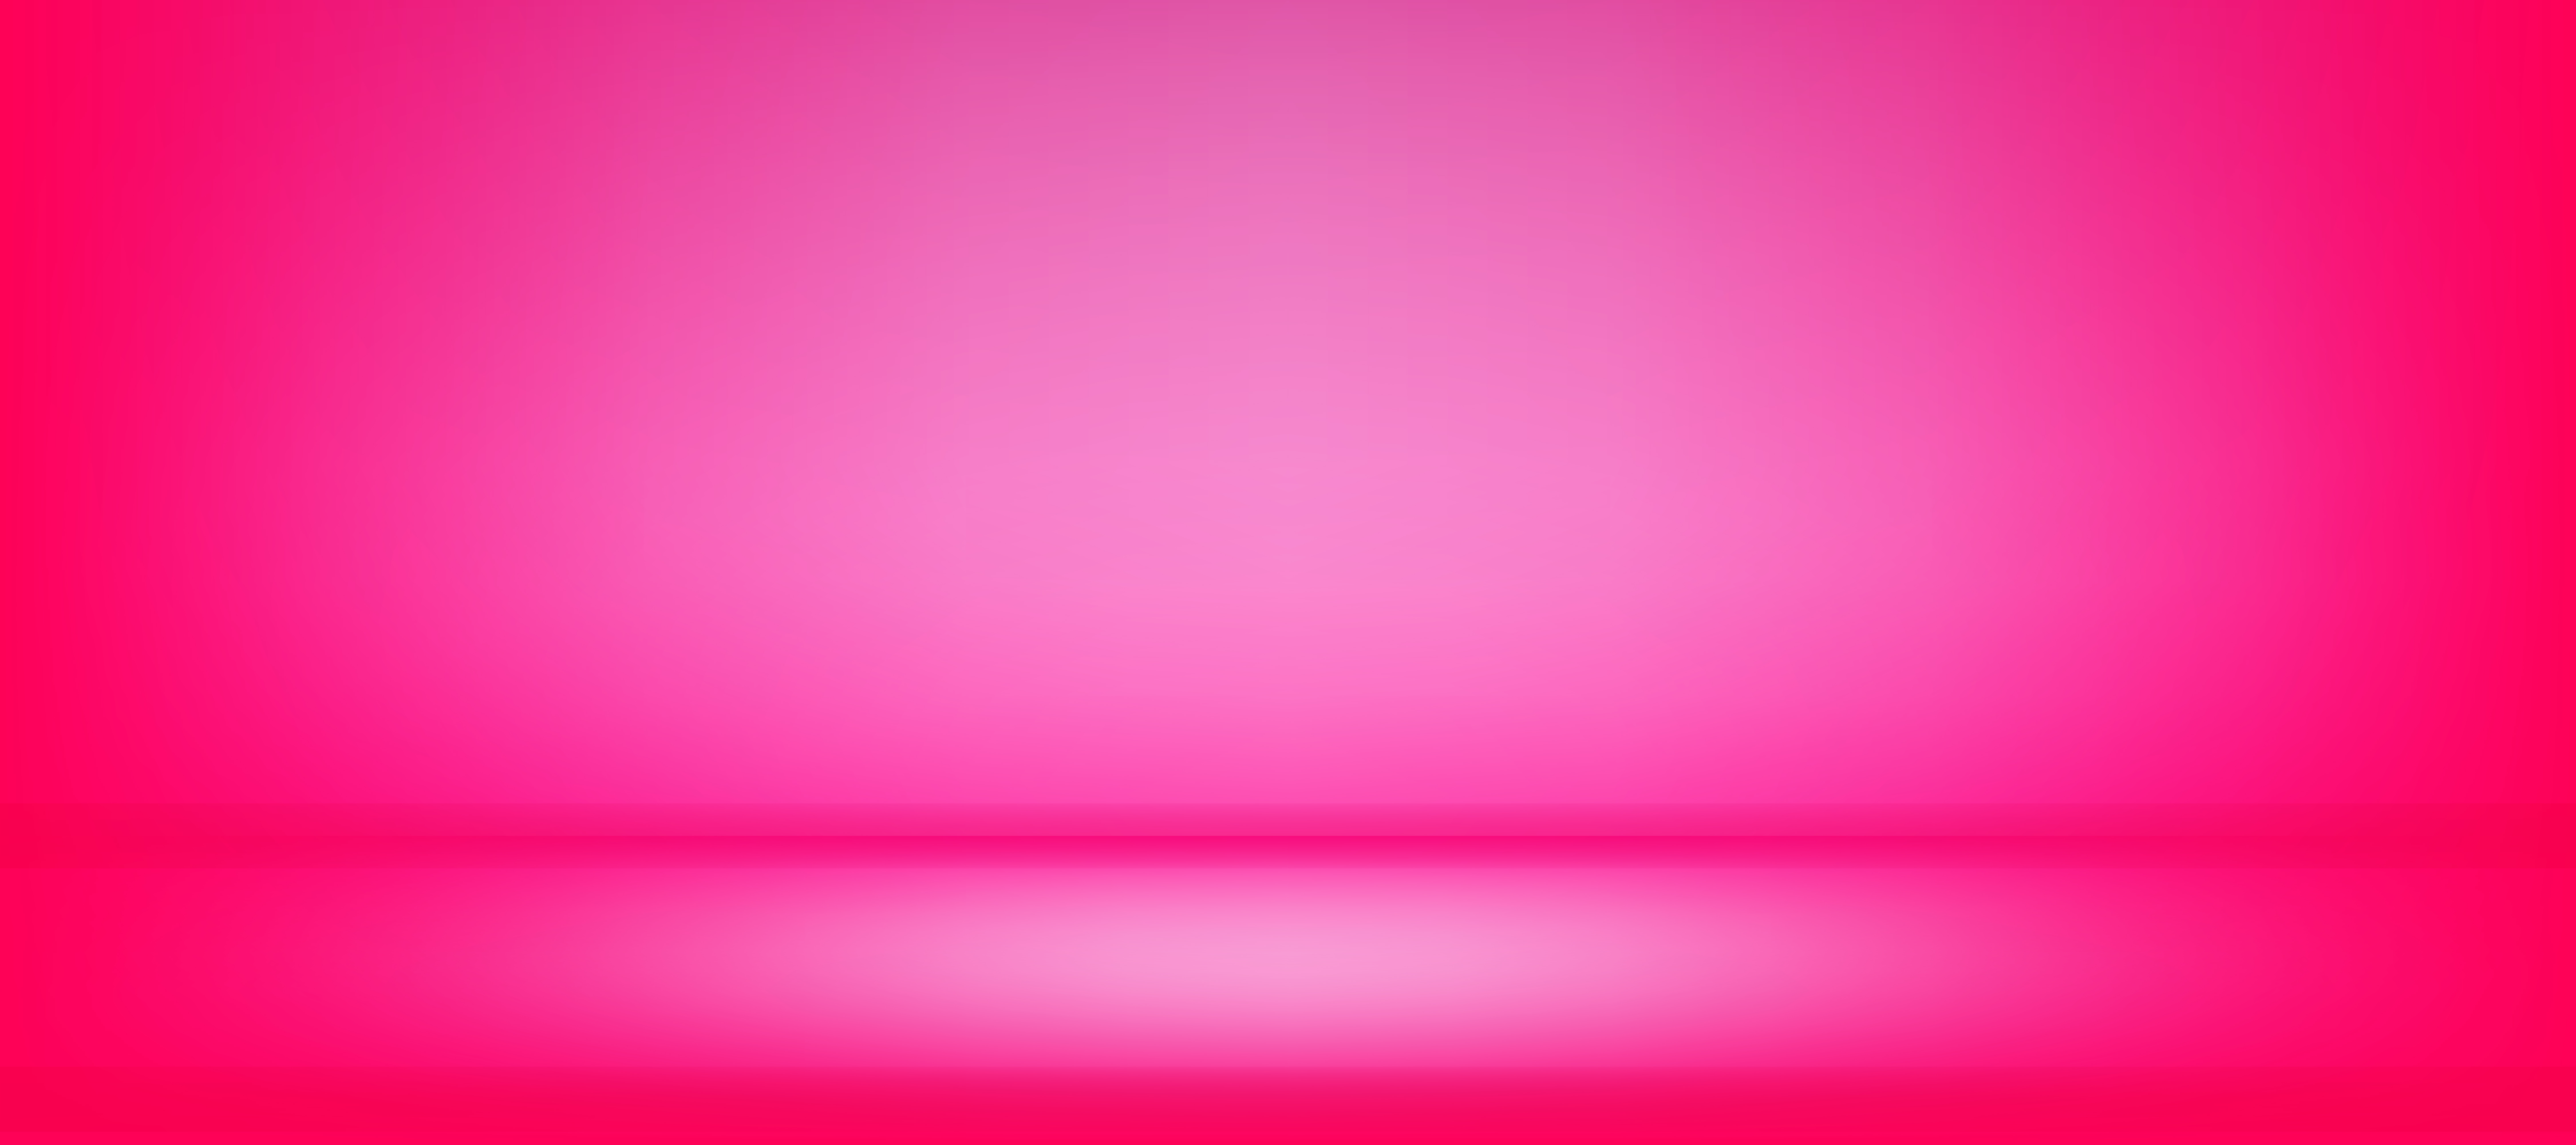 Colorful Pink Studio Room And Wall Background For Present